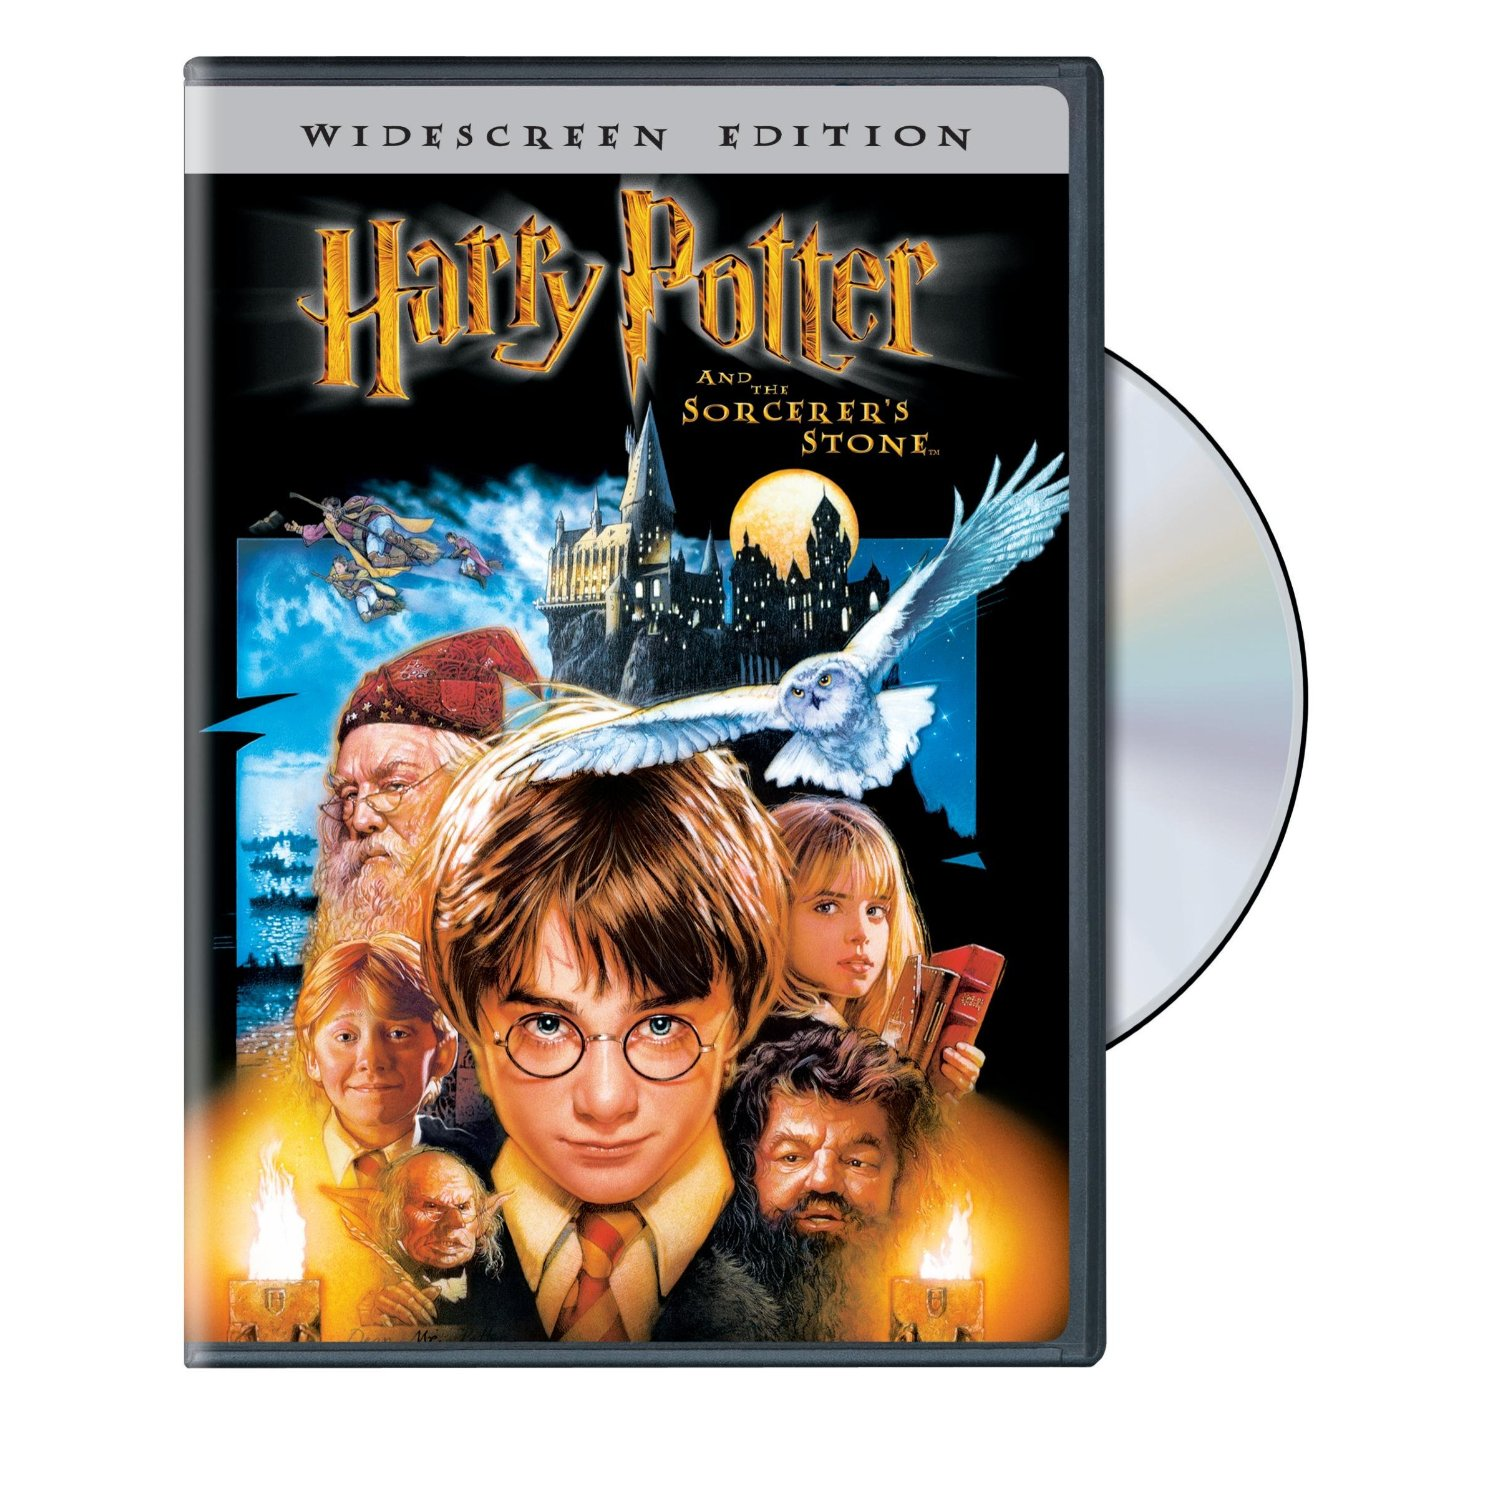 Harry Potter and the Sorcerer's Stone (PG)